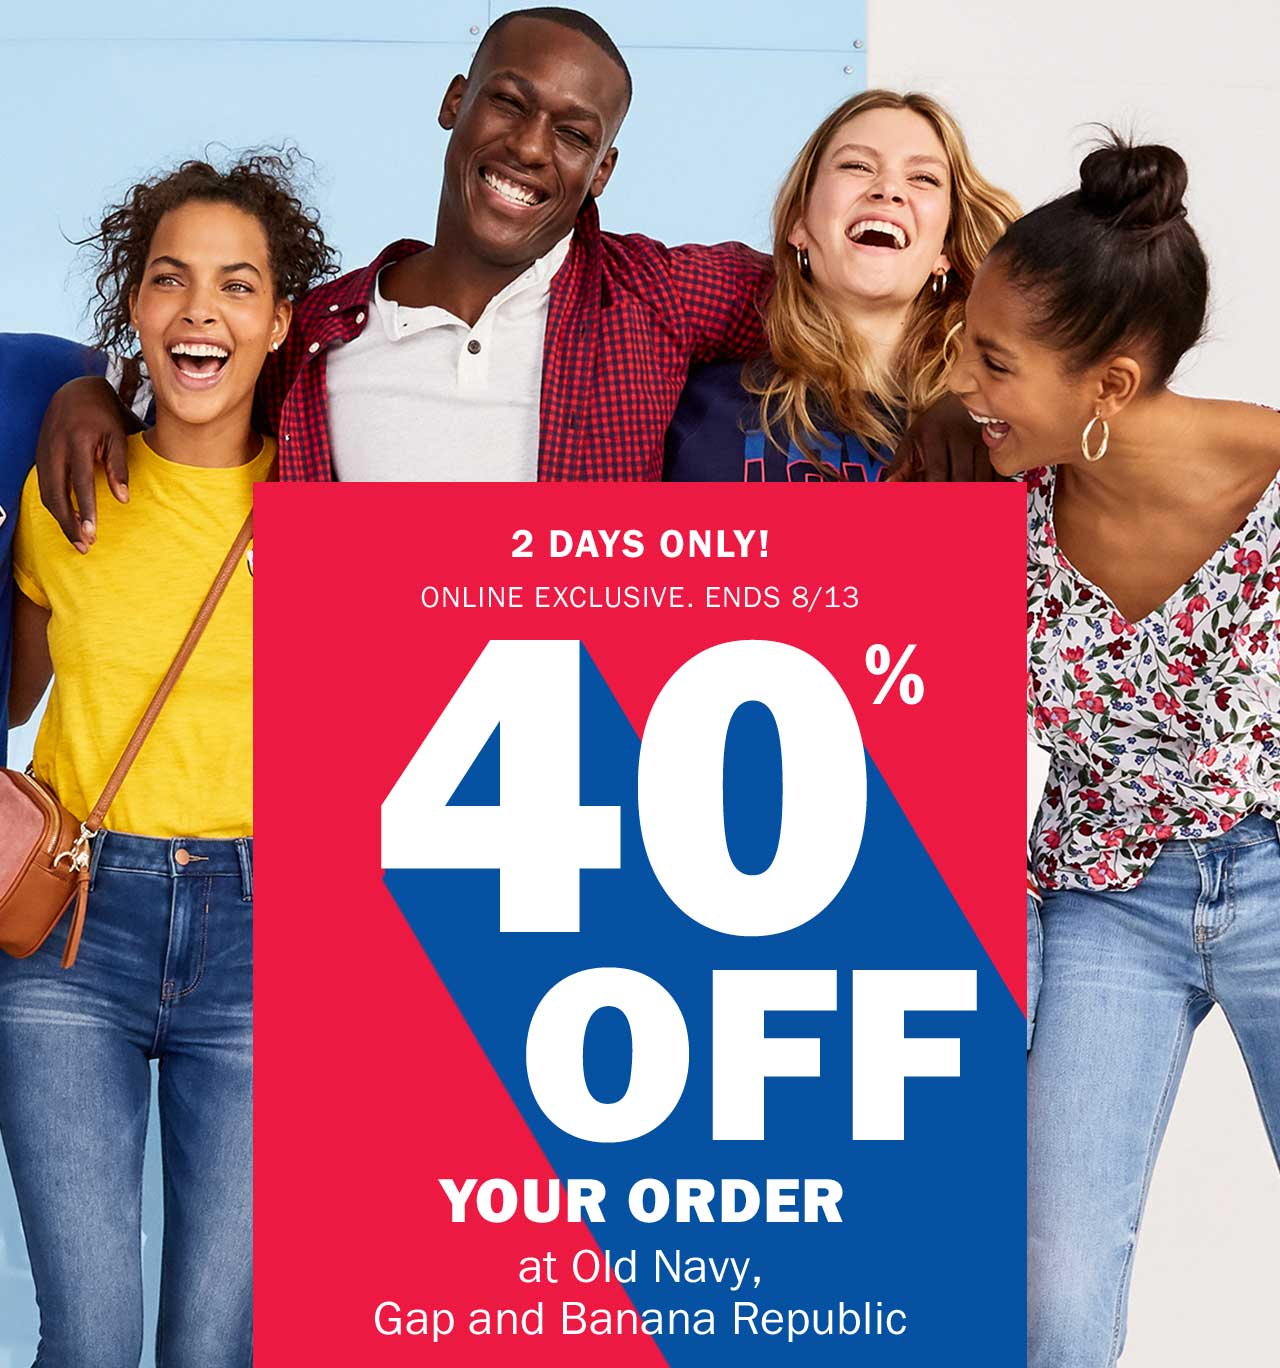 40% OFF YOUR ORDER at Old Navy, Gap and Banana Republic